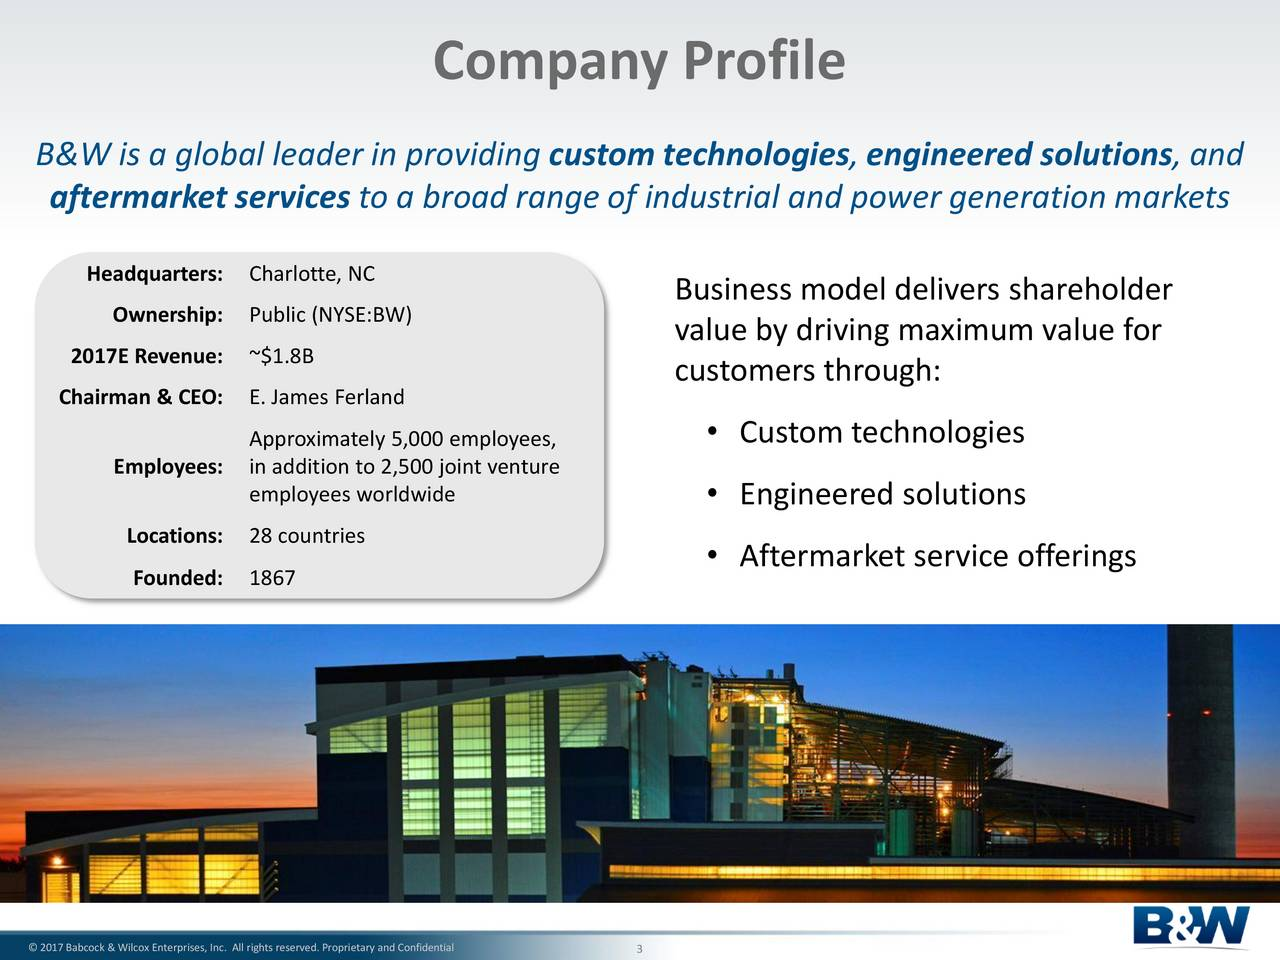 B&W is a global leader in providing custom technologies, engineered solutions, and aftermarket services to a broad range of industrial and power generation markets Headquarters: Charlotte, NC Ownership: Public (NYSE:BW) Business model delivers shareholder value by driving maximum value for 2017E Revenue: ~$1.8B customers through: Chairman & CEO: E. James Ferland Approximately 5,000 employees,  Custom technologies Employees: in addition to 2,500 joint venture employees worldwide  Engineered solutions Locations:28 countries Aftermarket service offerings Founded: 1867